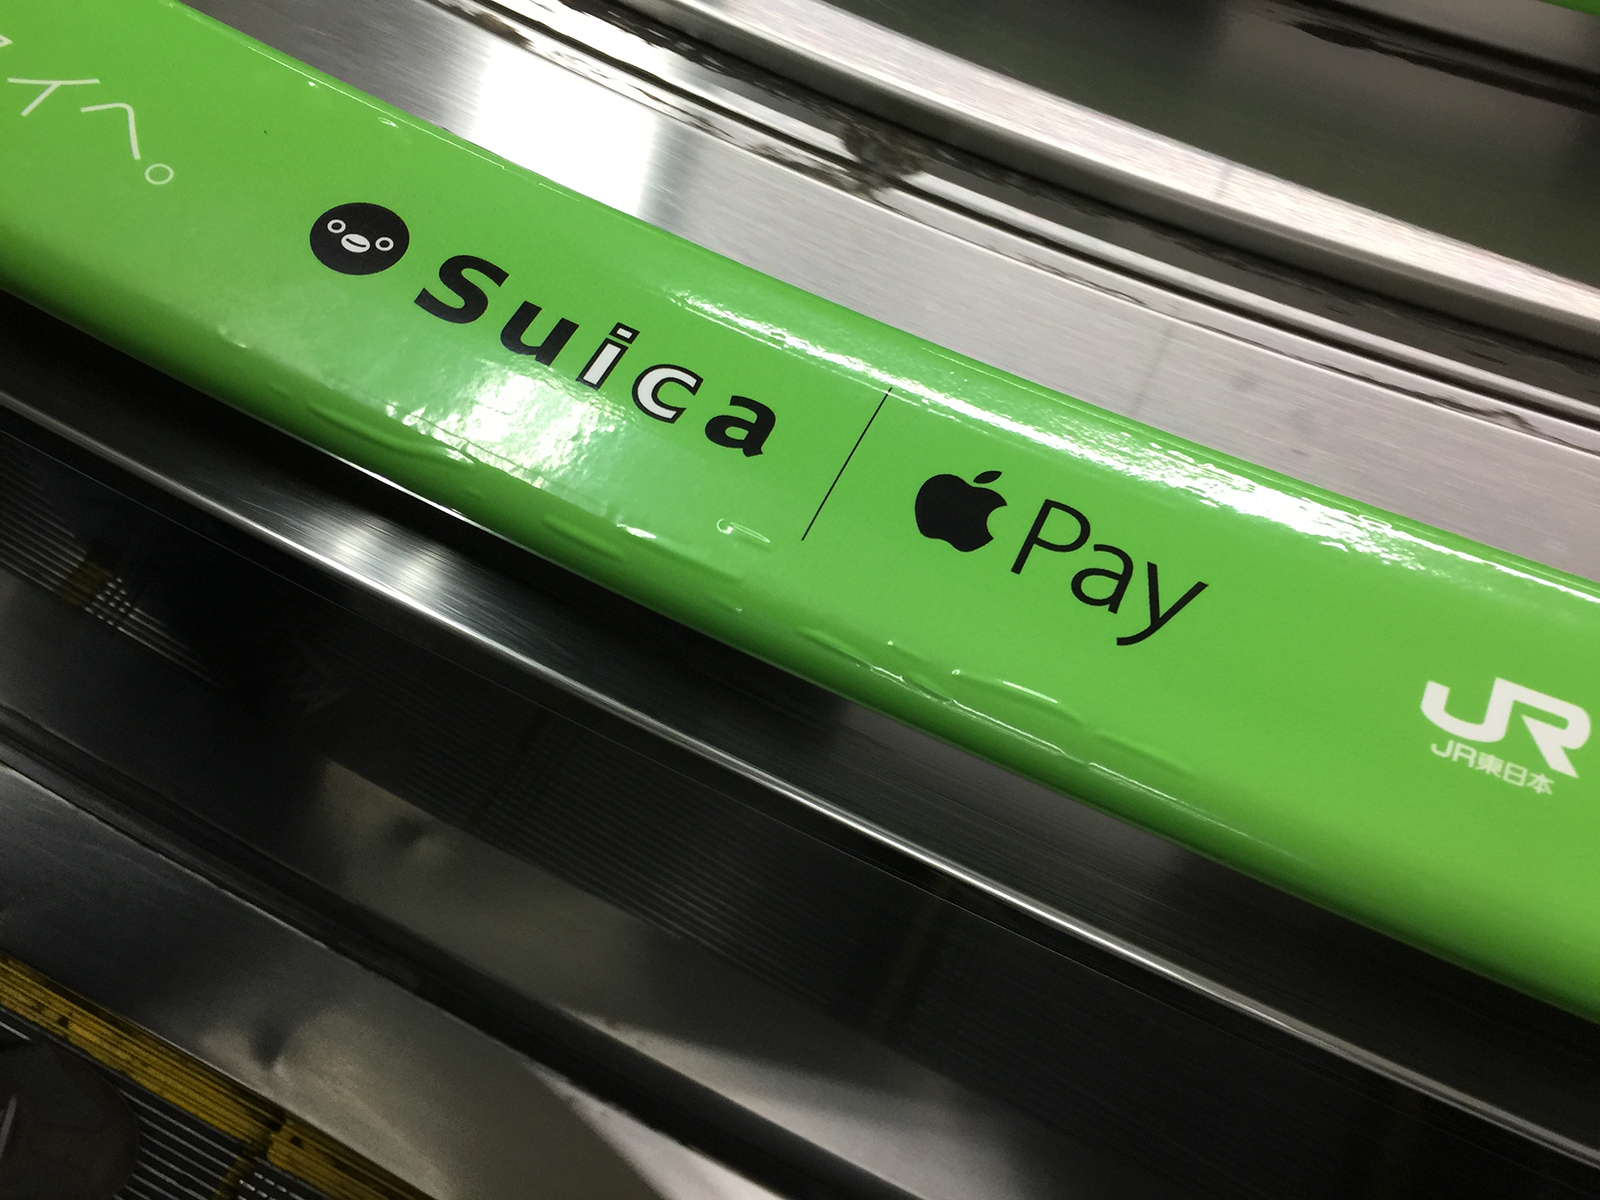 JR promocionando Apple Pay conjuntamente con Apple